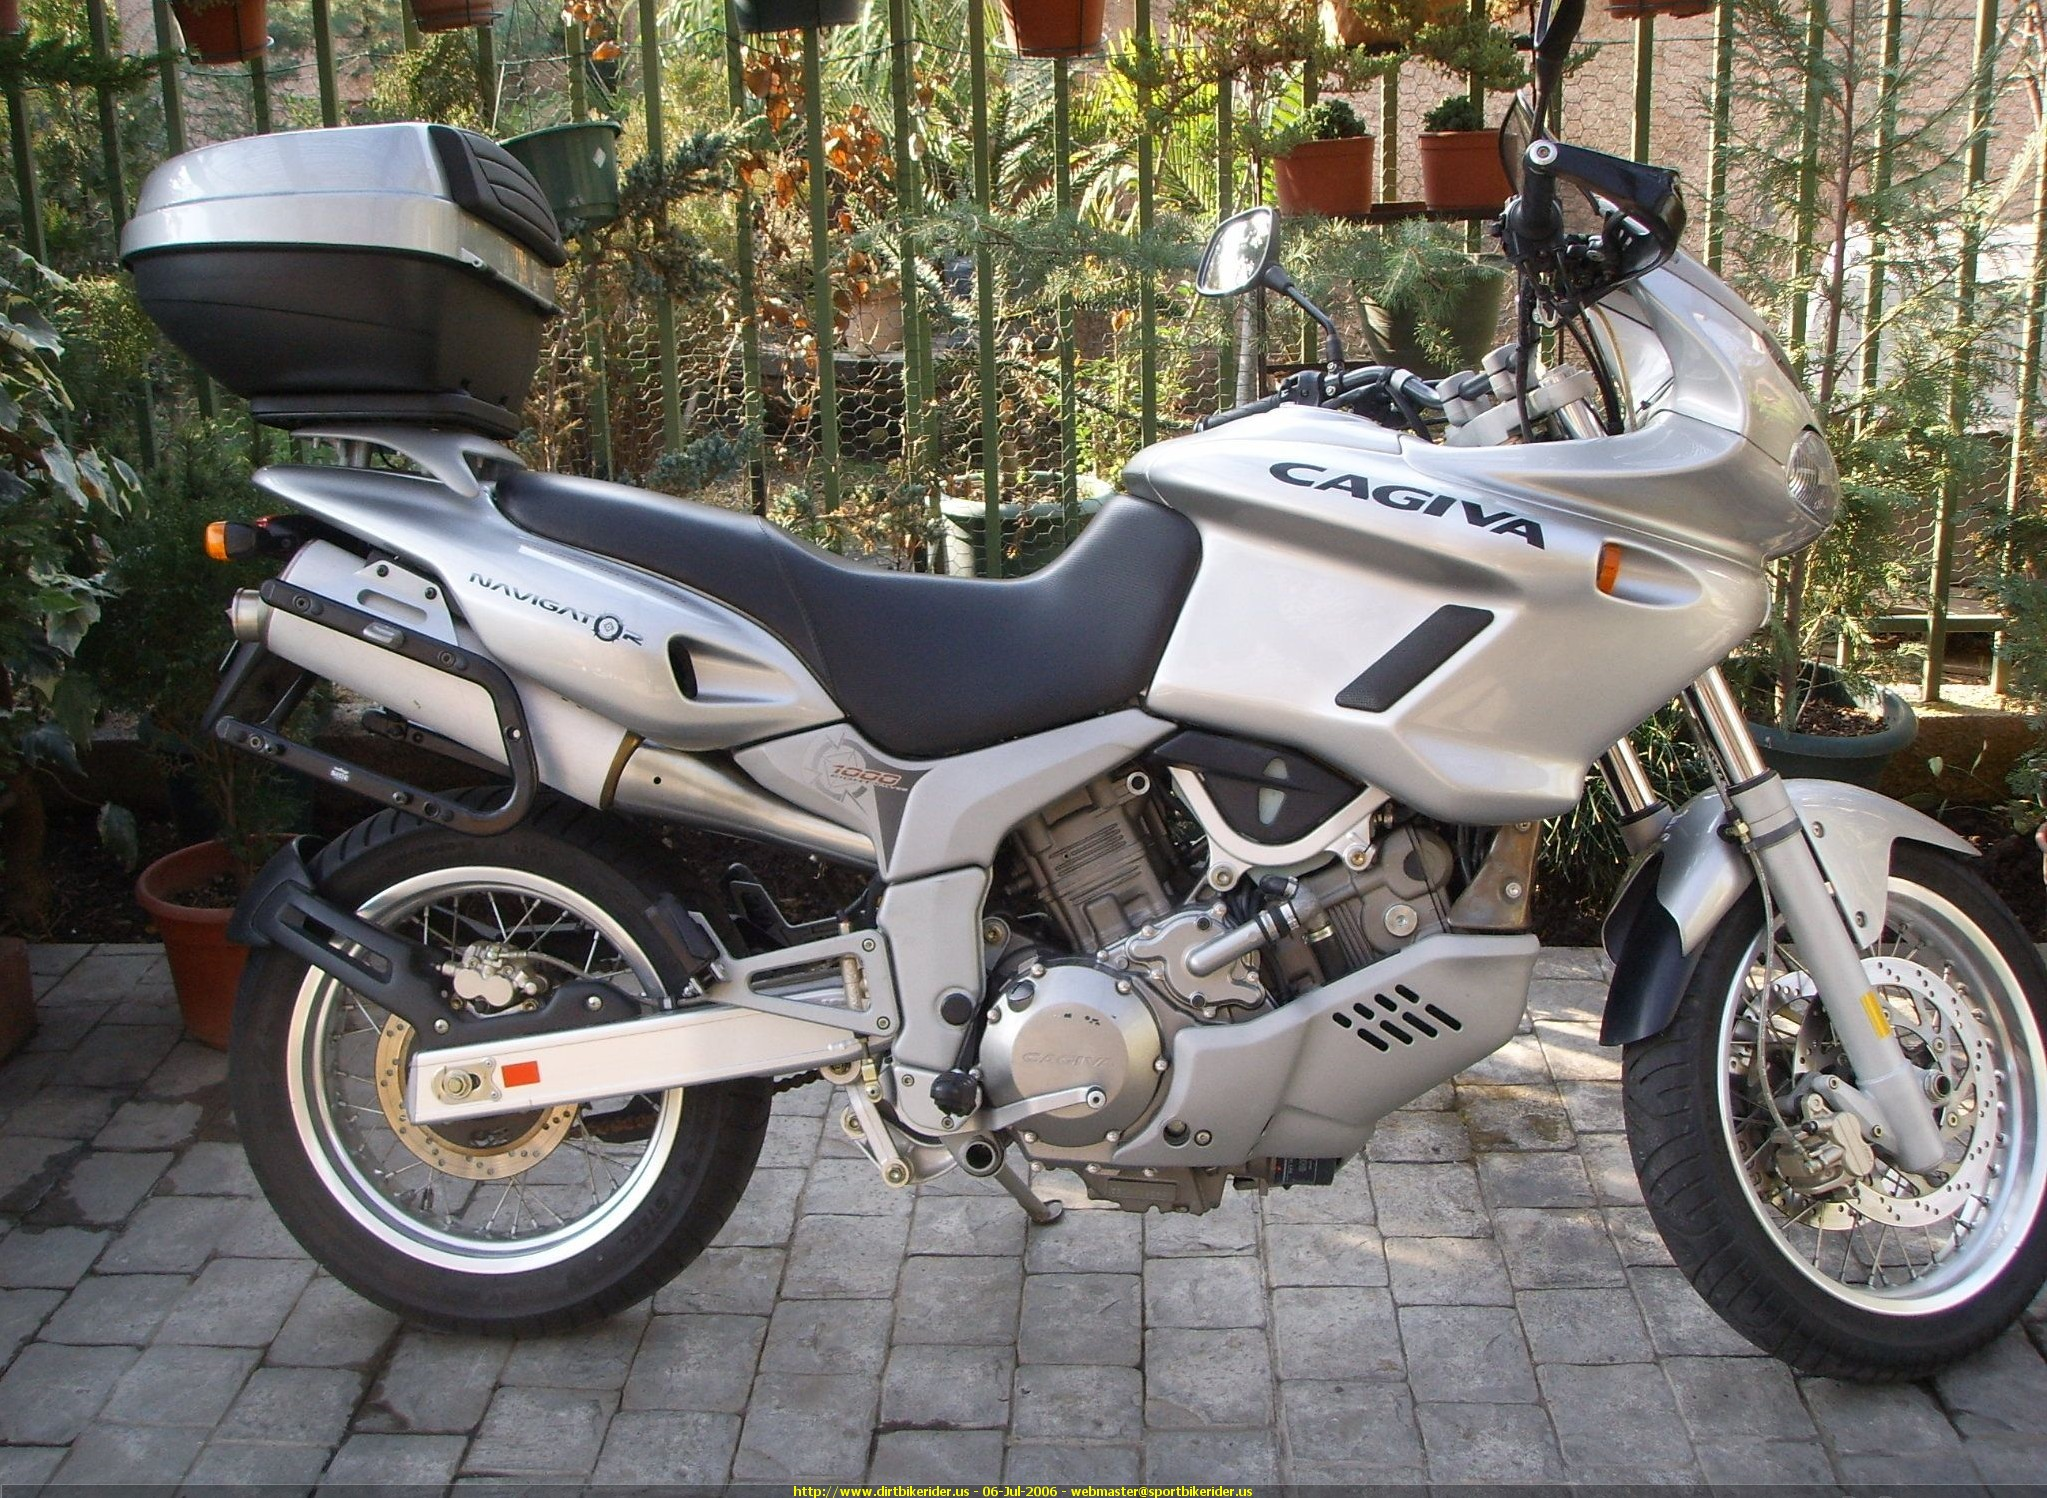 Cagiva Navigator 1000 2004 images #67970